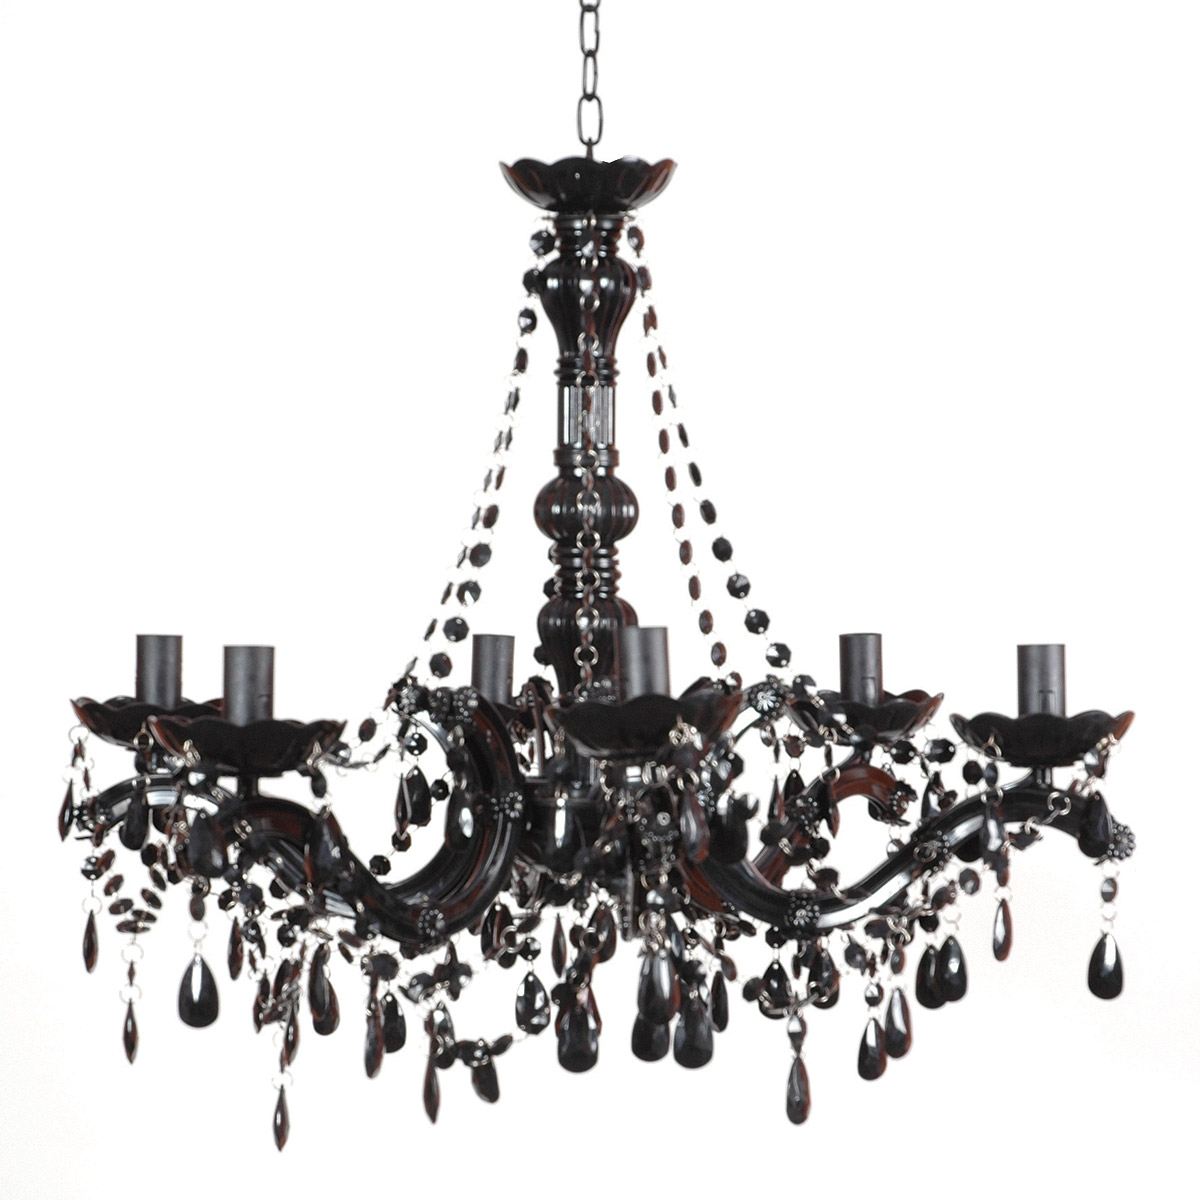 Small Chandeliers For Large Size Of Crystal And Black Chandelier Intended For Large Black Chandelier (Image 15 of 15)